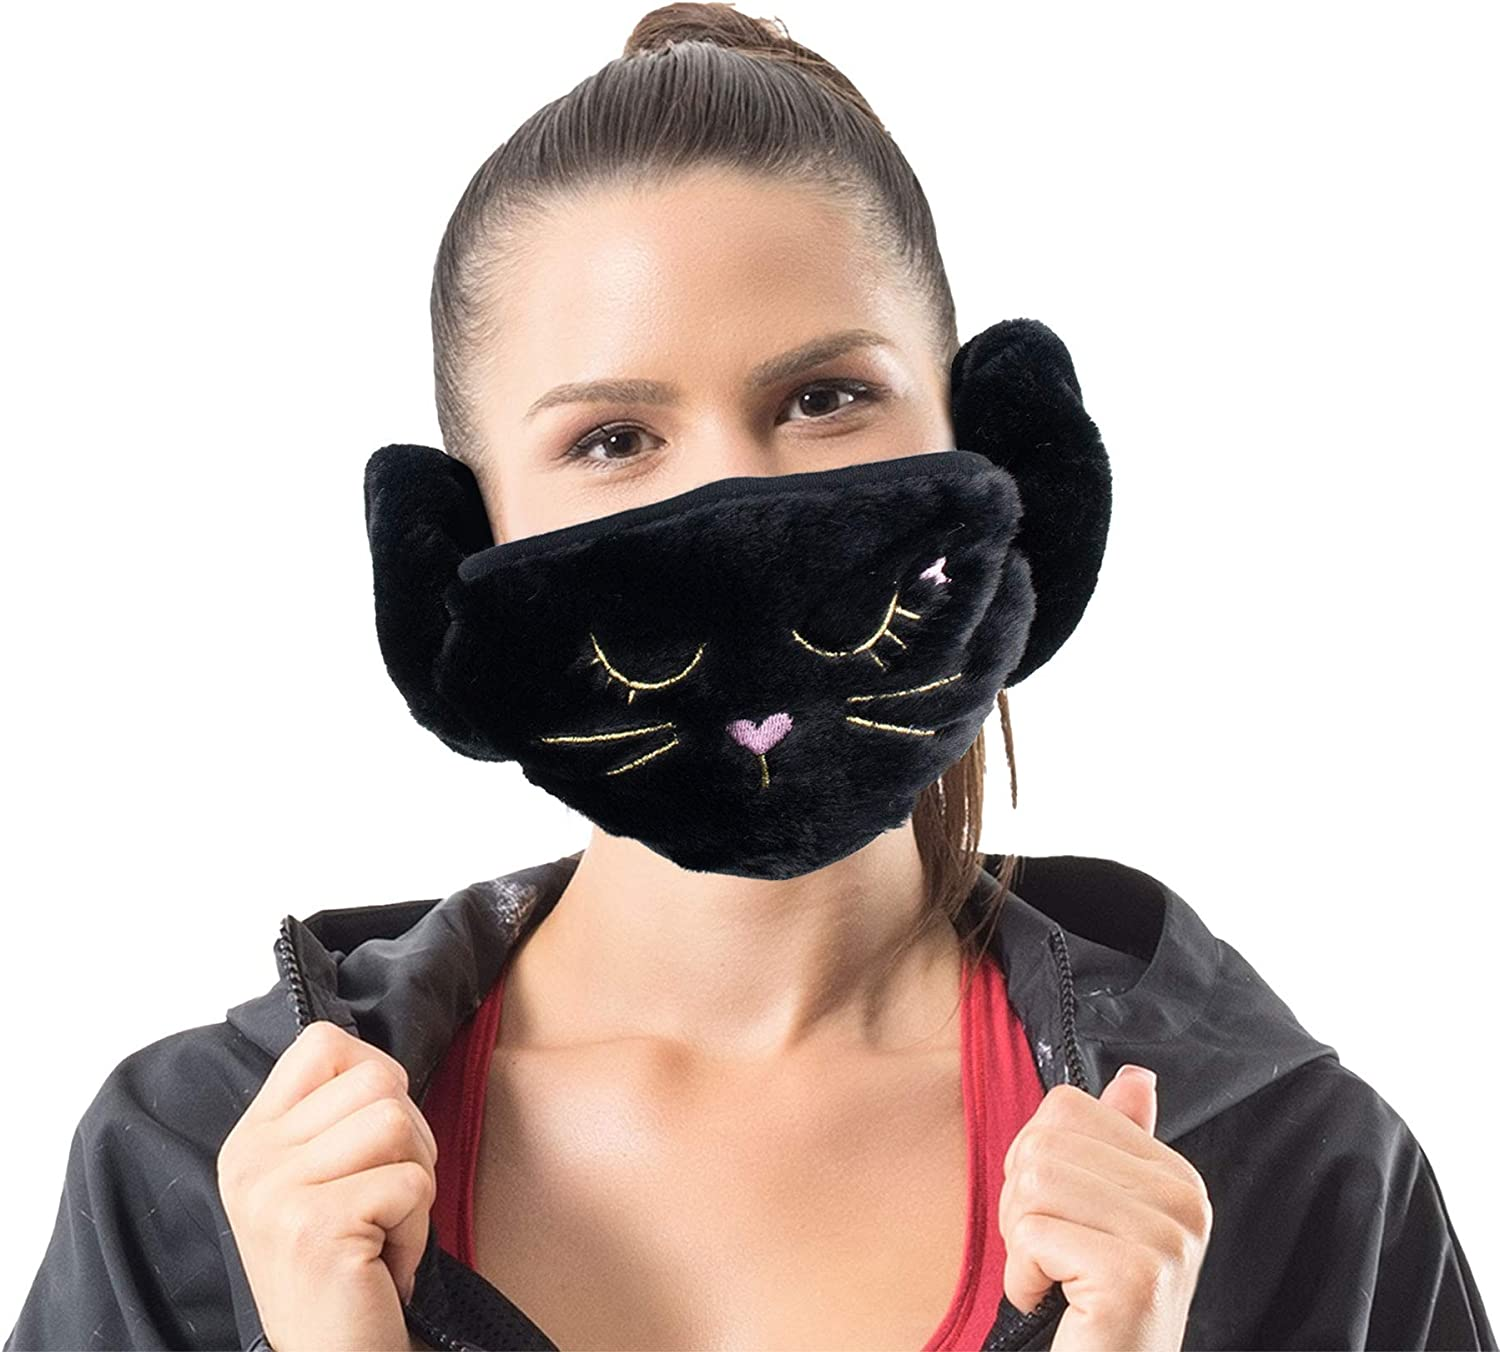 Mad Mask 2-in-1 Faux Fur Kitty Omaha Mall Face Earmuffs Plu Warm Classic with